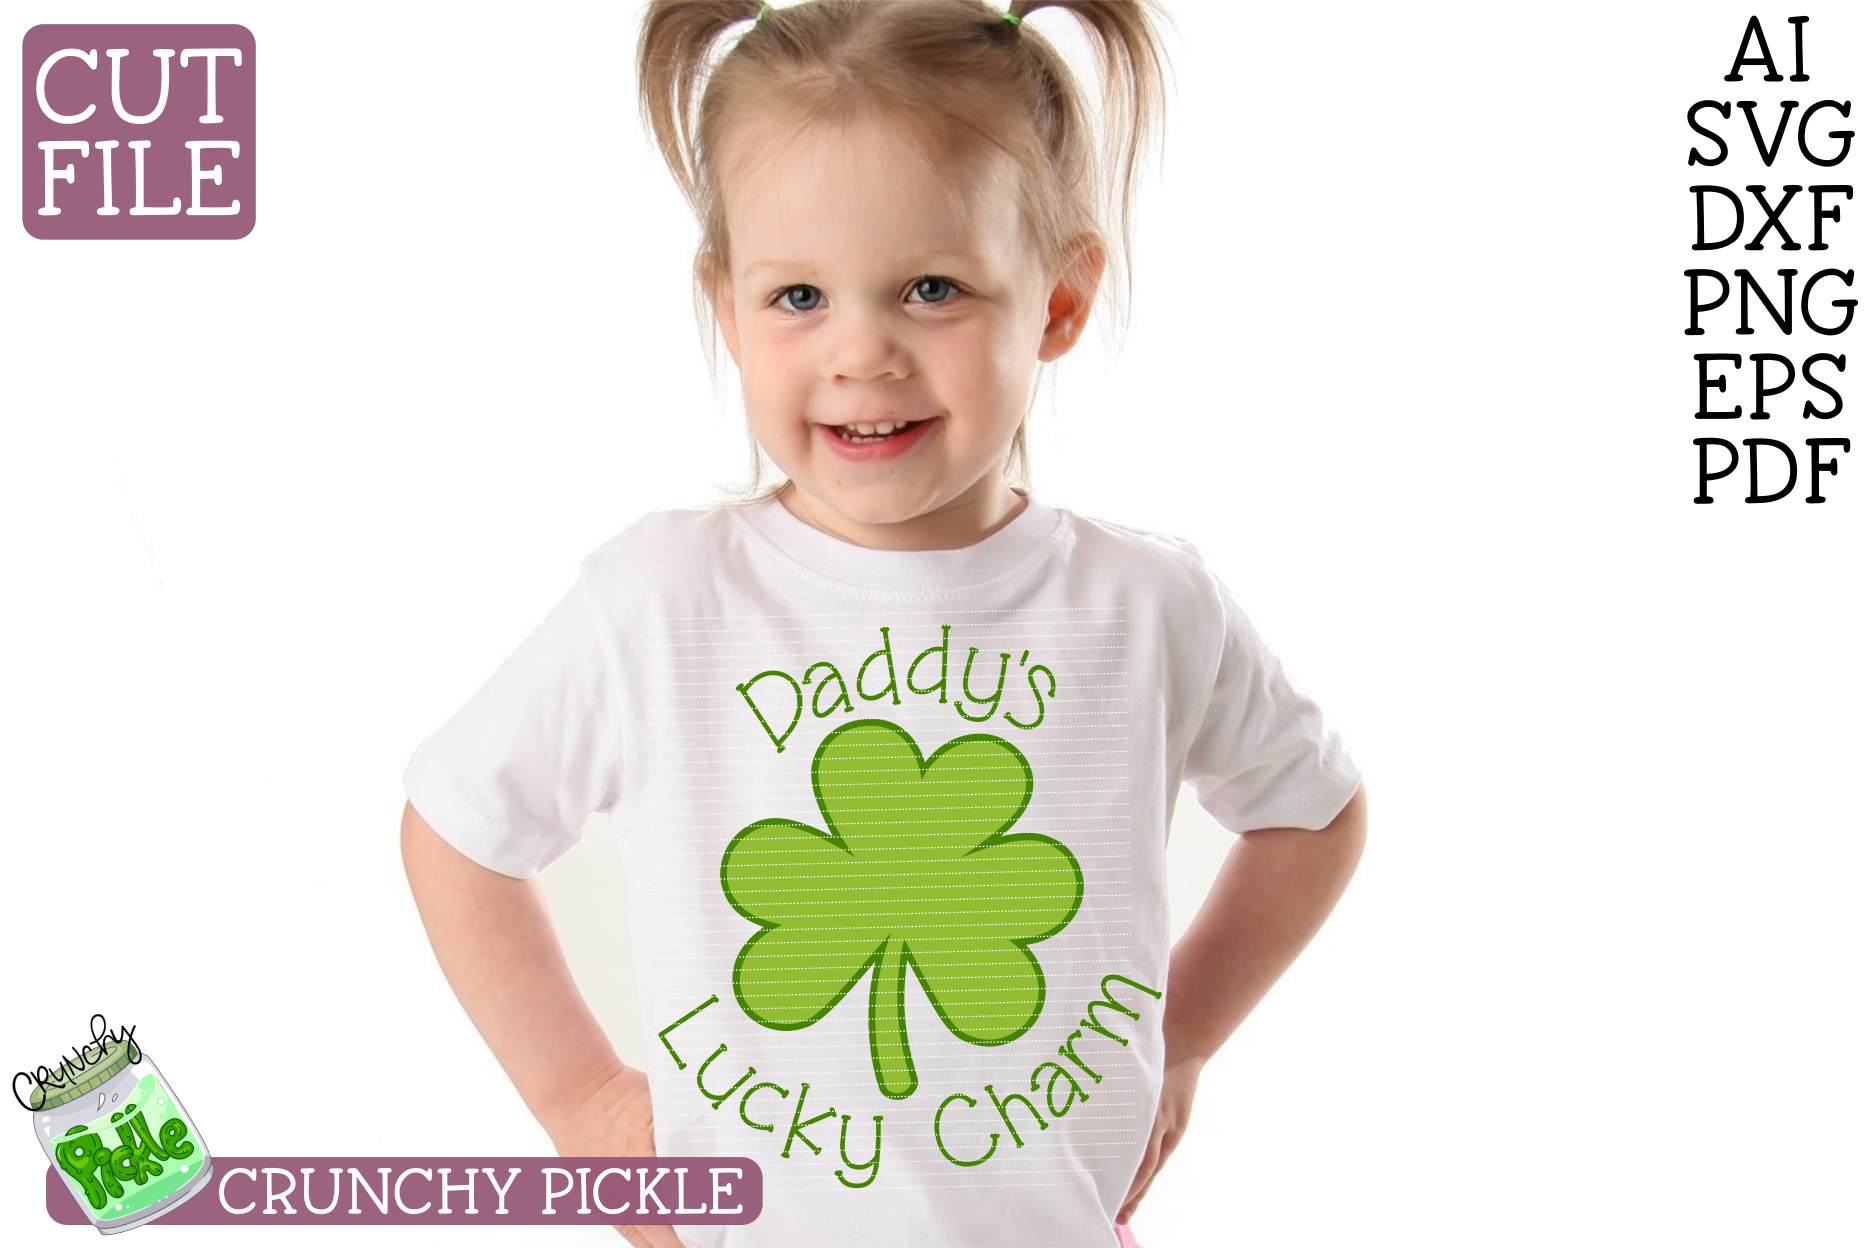 Daddy's Lucky Charm - St Patrick's Day SVG File example image 1